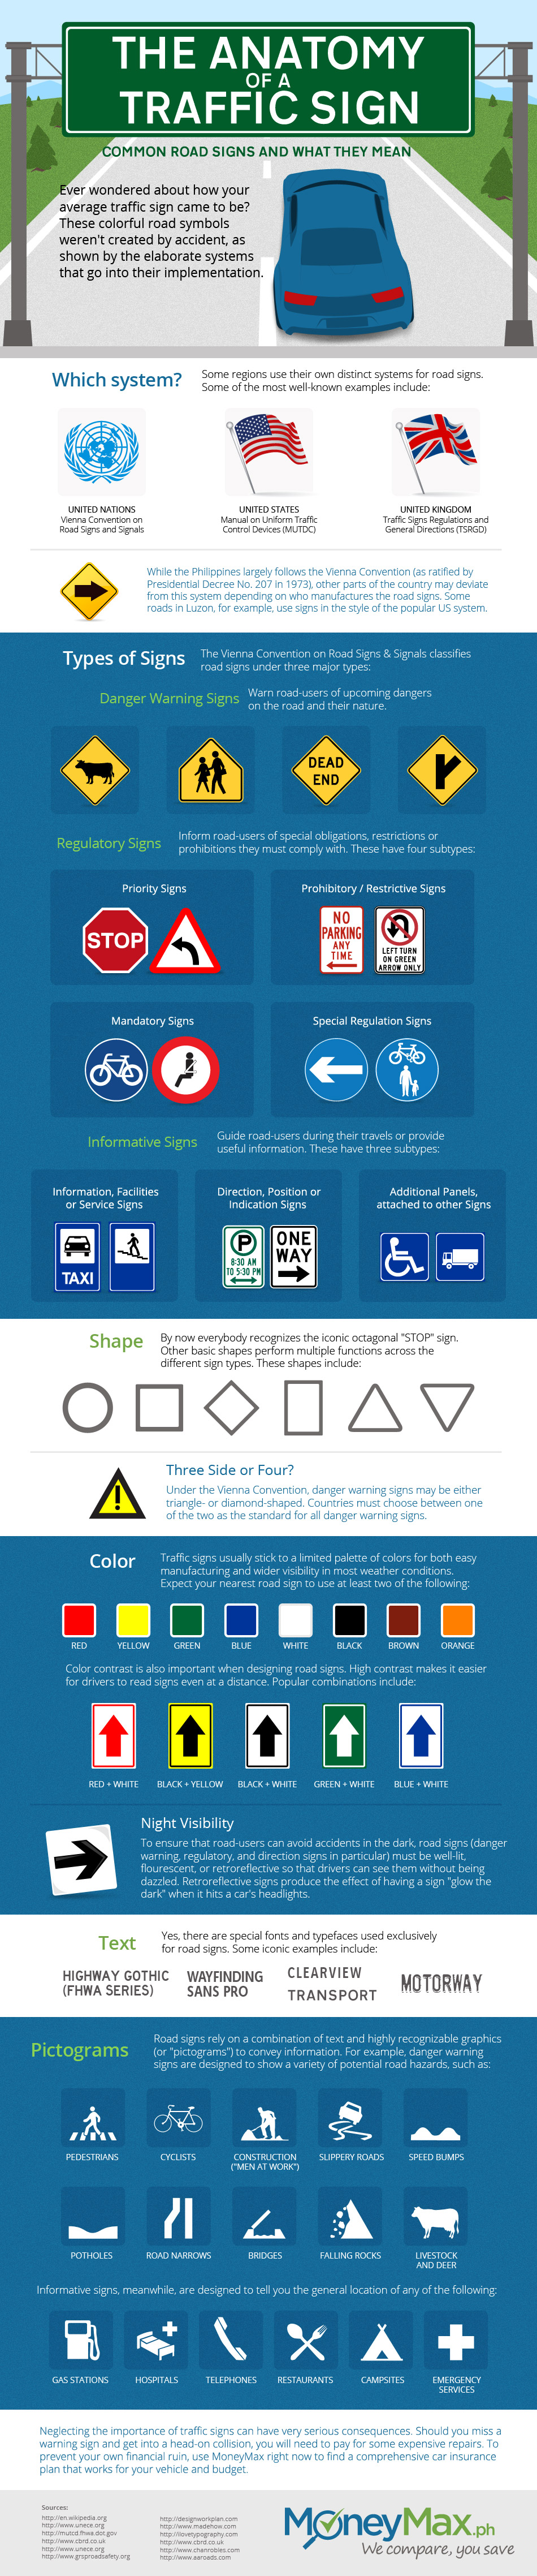 Anatomy of a traffic sign infographic